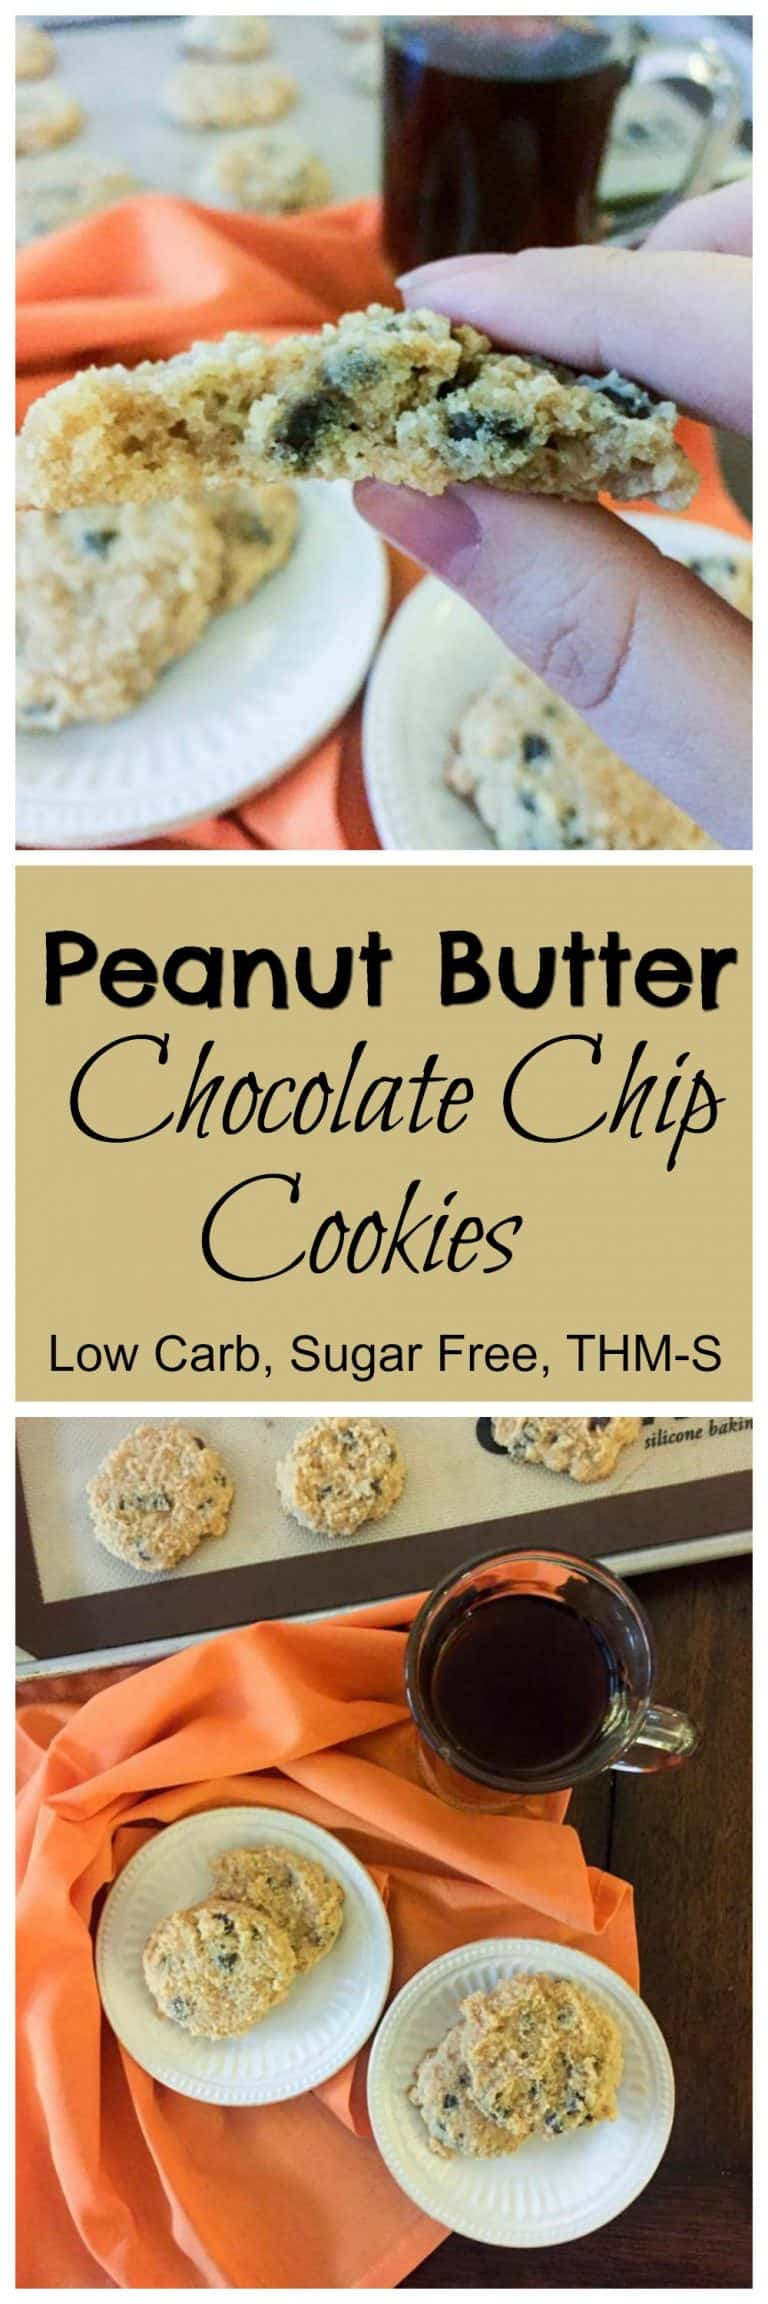 Peanut Butter Chocolate Chip Cookies (Low Carb, Sugar Free, THM-S)